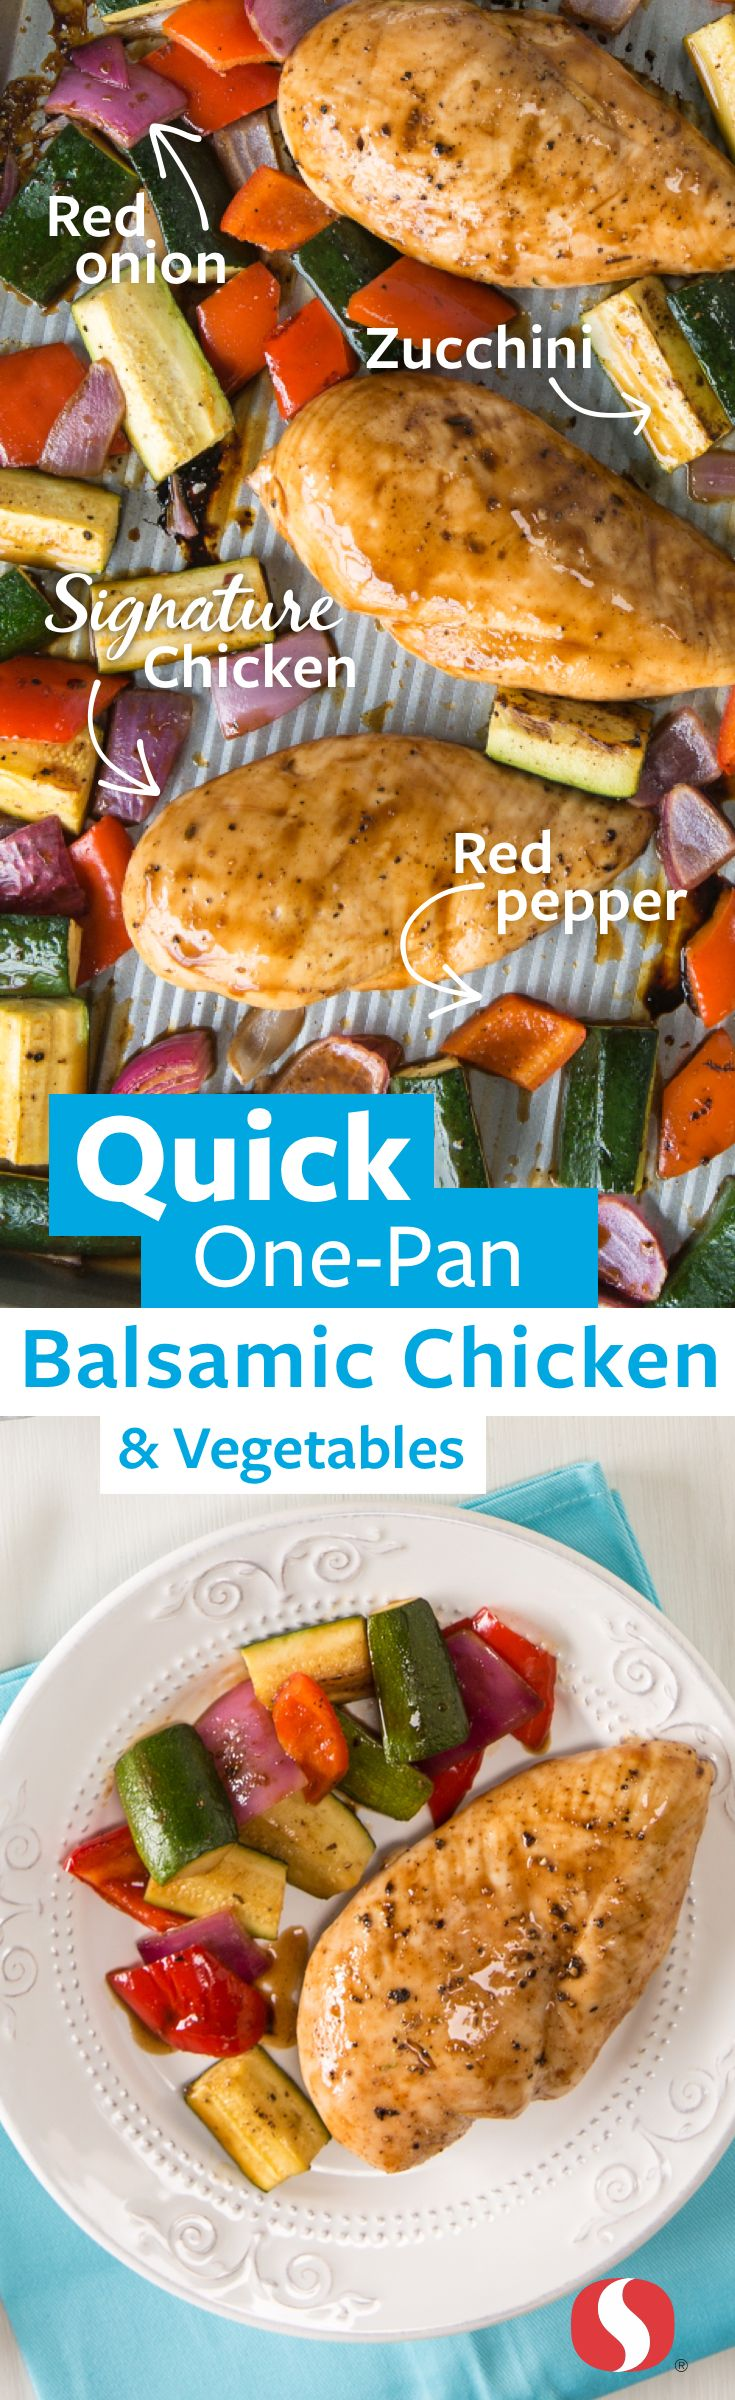 One Pan Balsamic Chicken and Vegetables— Simplify weeknight meal planning with this easy one-pan recipe. Packed with lean protein-rich Signature Farms™ quality chicken breasts and produce, this dish is full of flavor and nutrients!